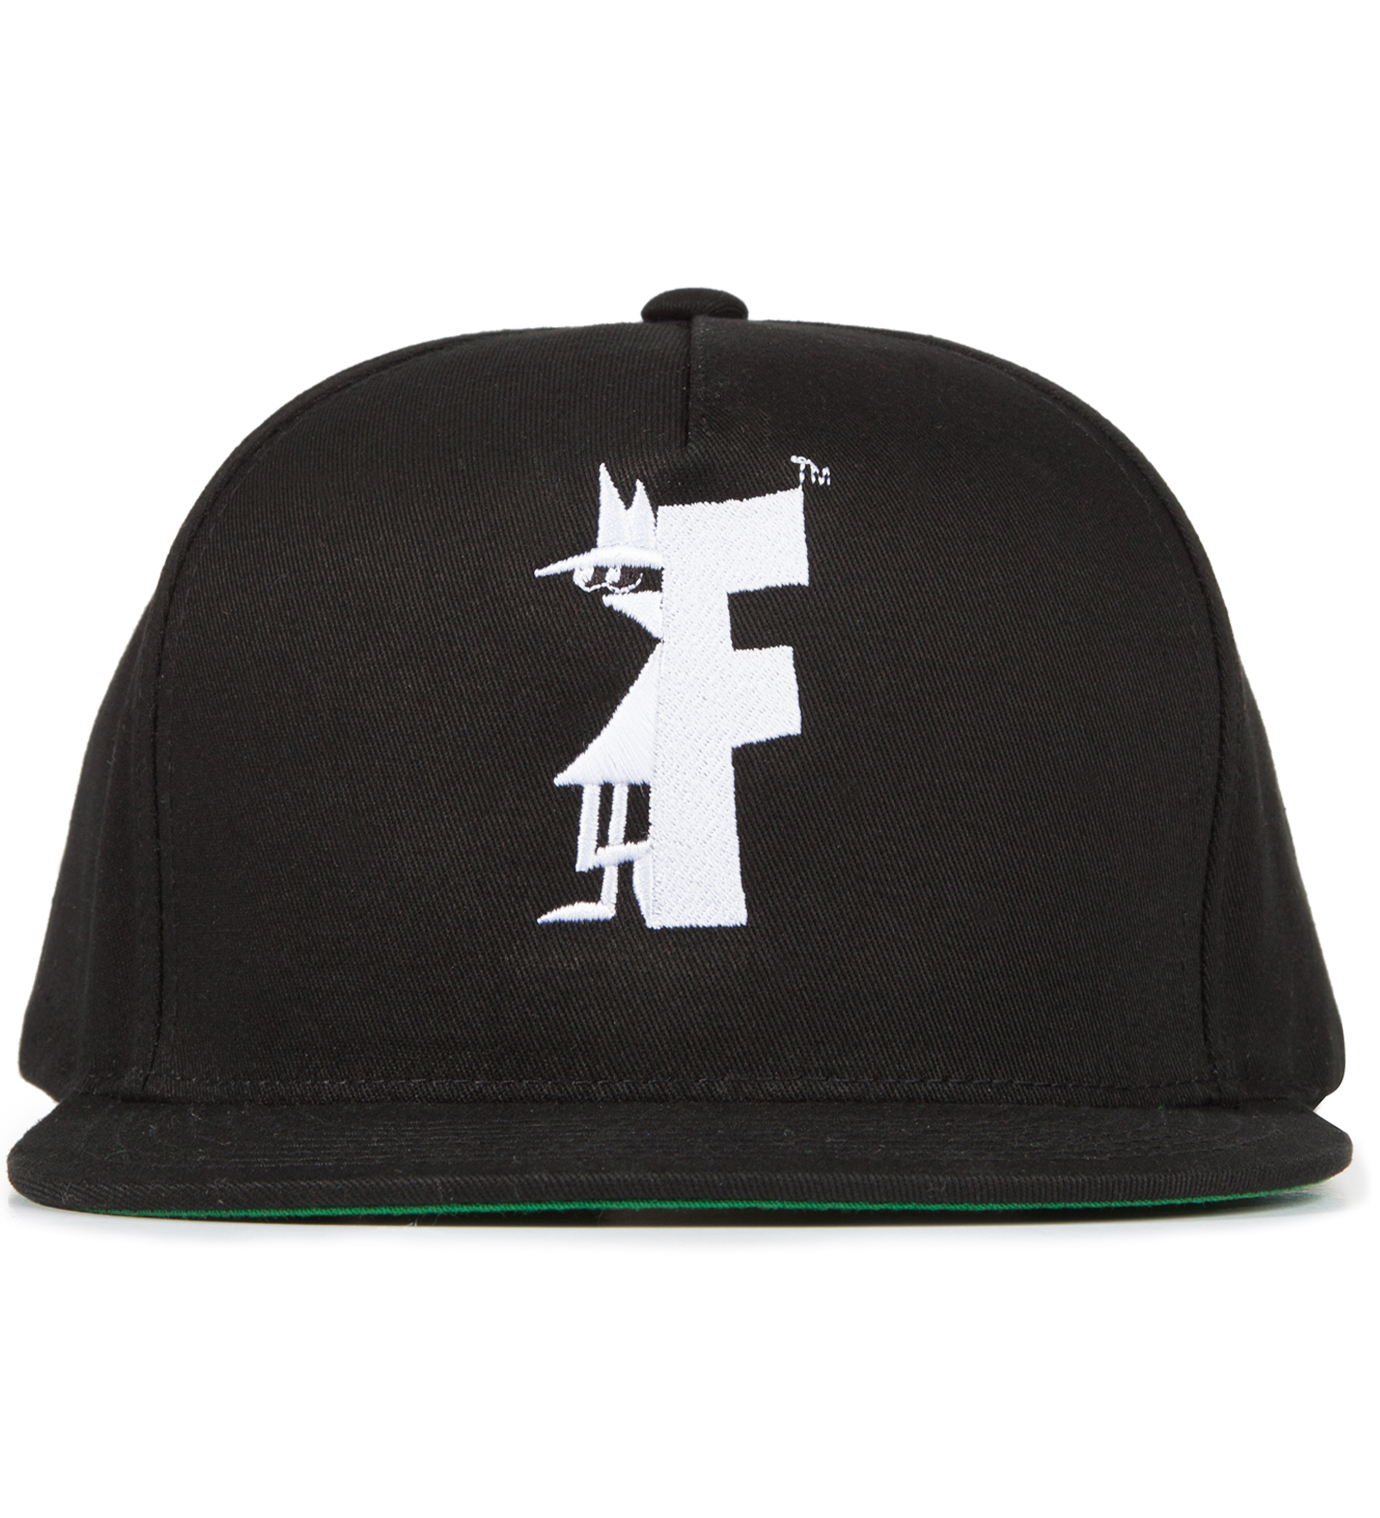 FUCT Black Mr. 8 Ball Snapback